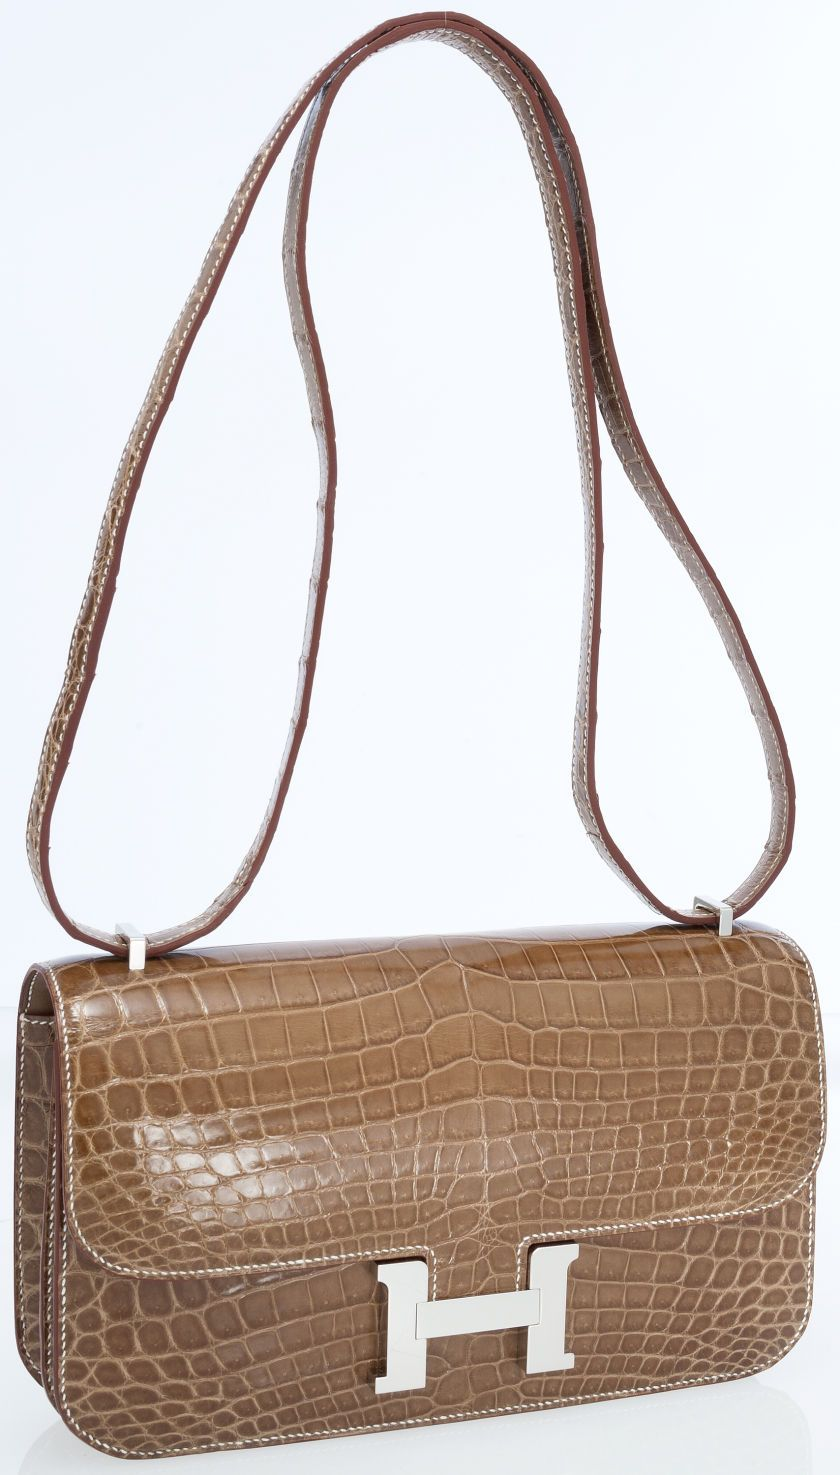 Hermes Shiny Ficelle Nilo Crocodile Double Gusset Constance Elan Bag with Palladium Hardware  | The House of Beccaria ~